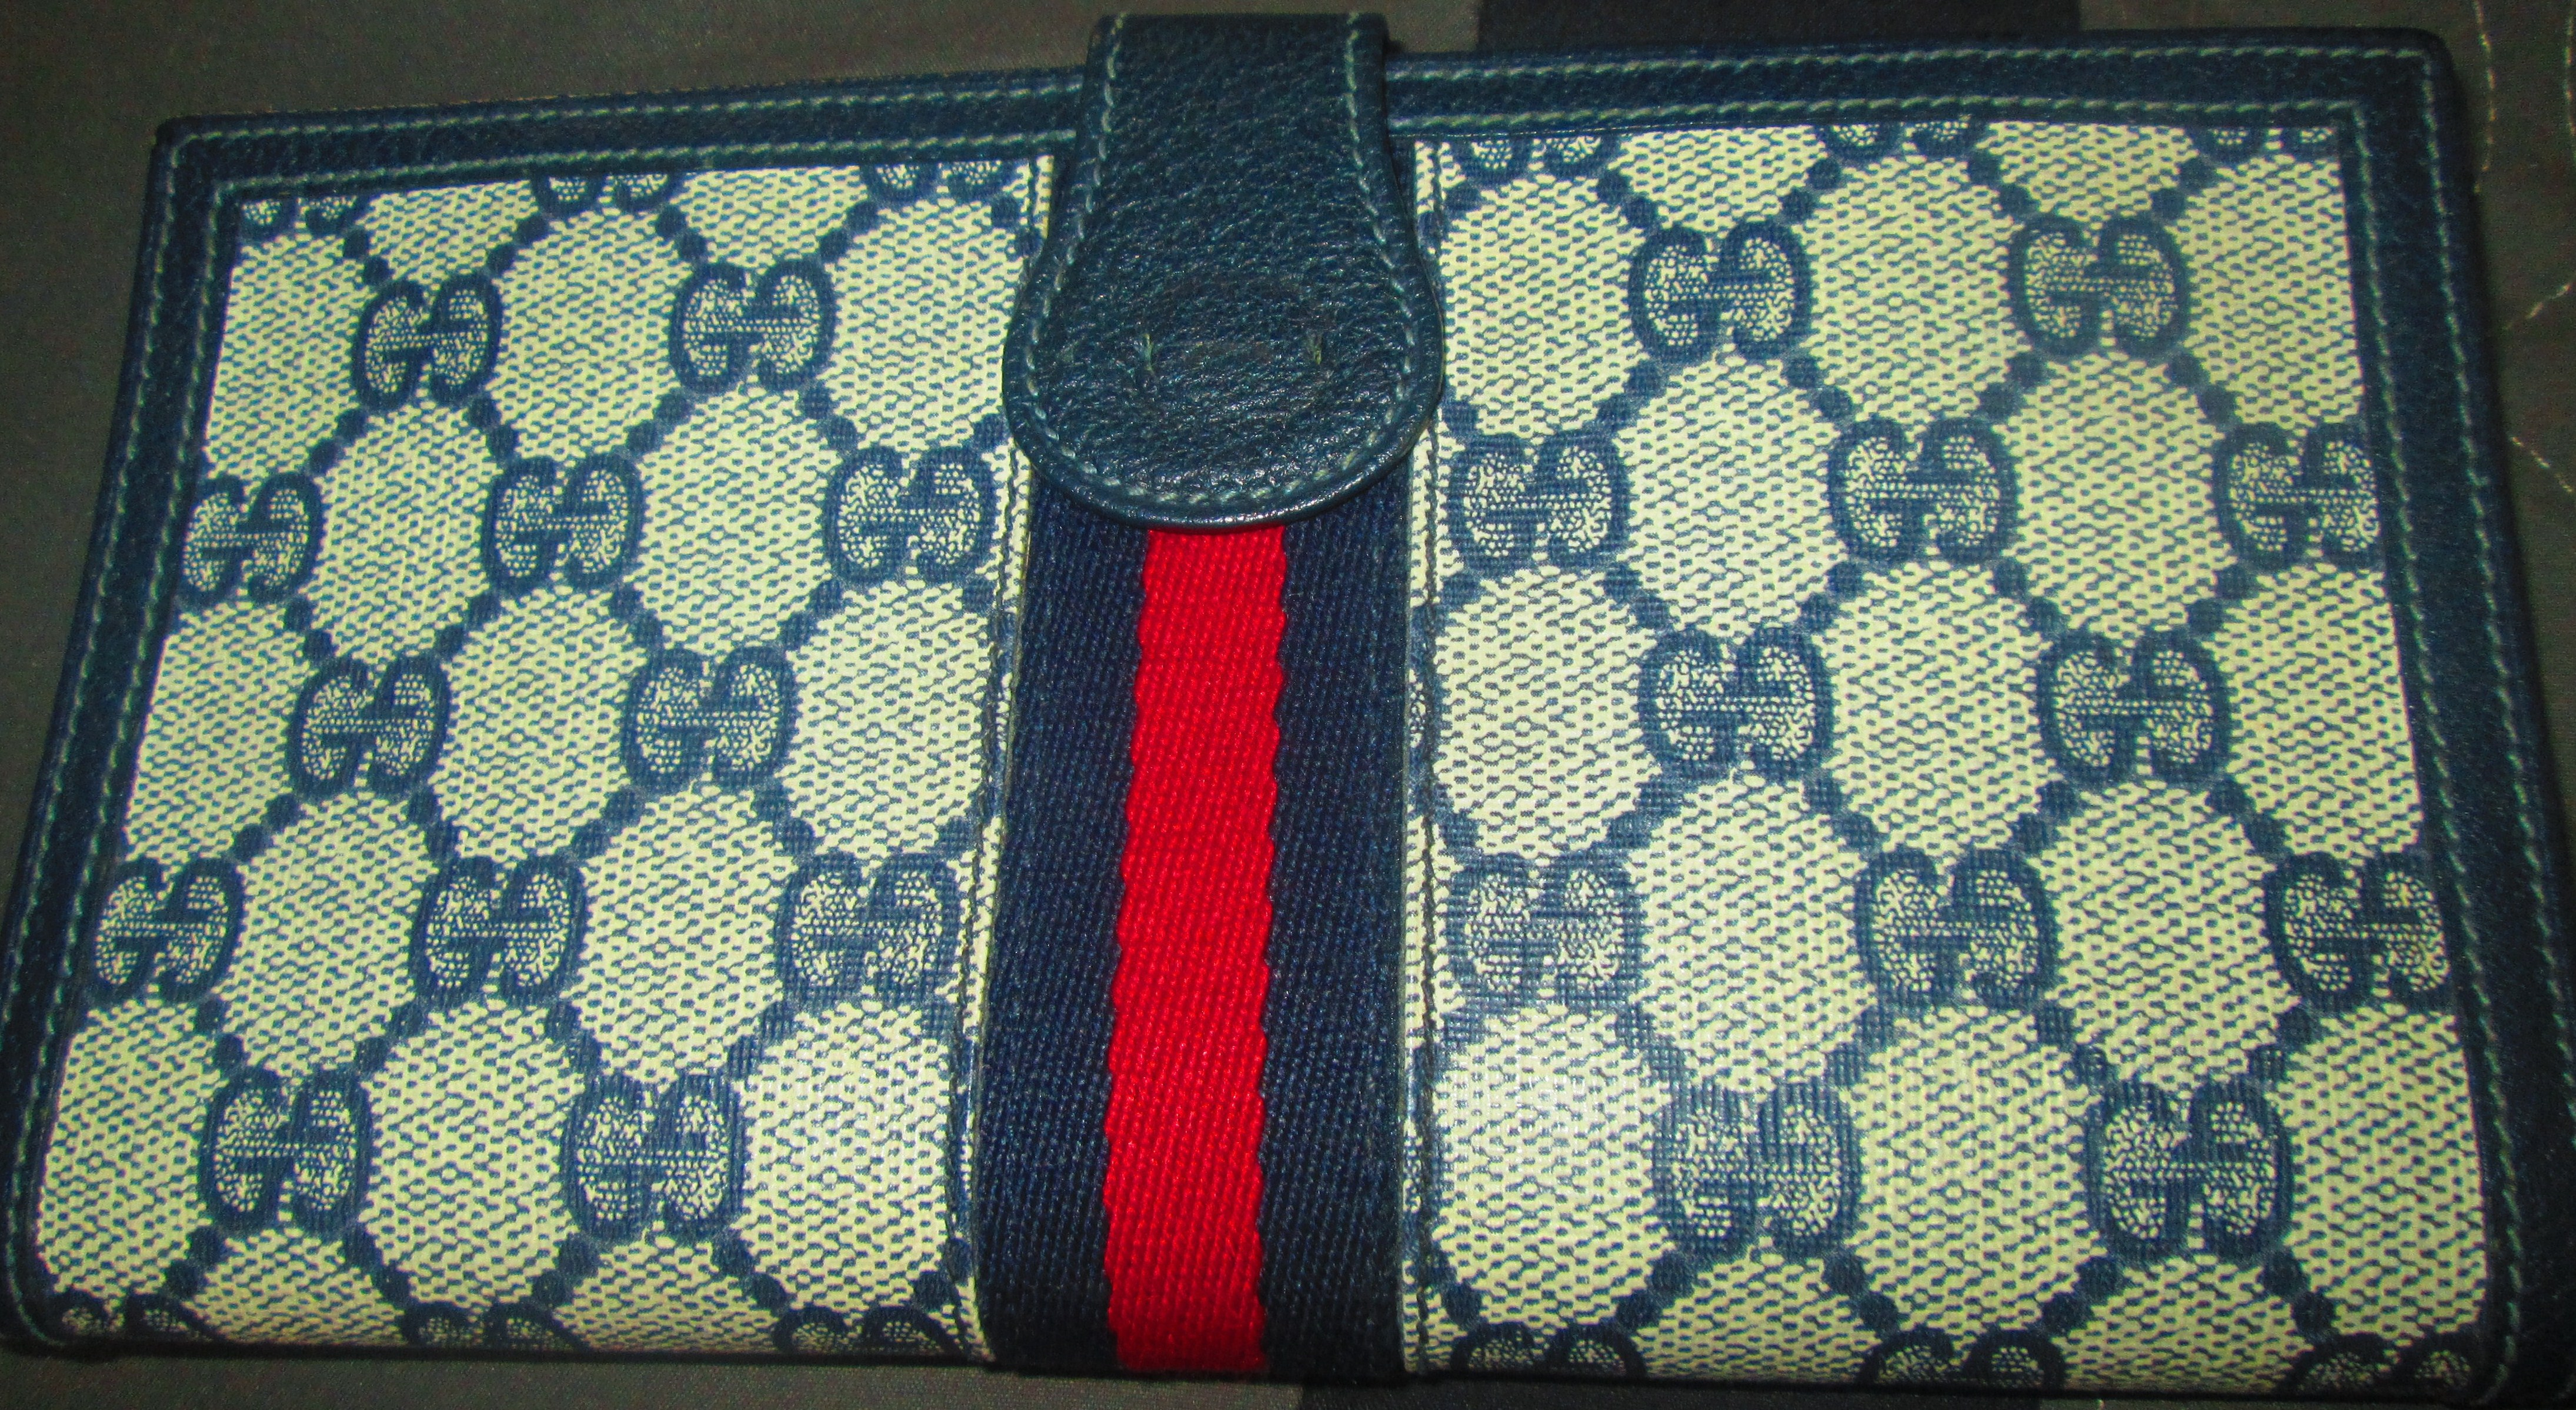 803bb0f6a4886d Help Authenticate This Vintage Gucci Wallet Real o... - The eBay ...